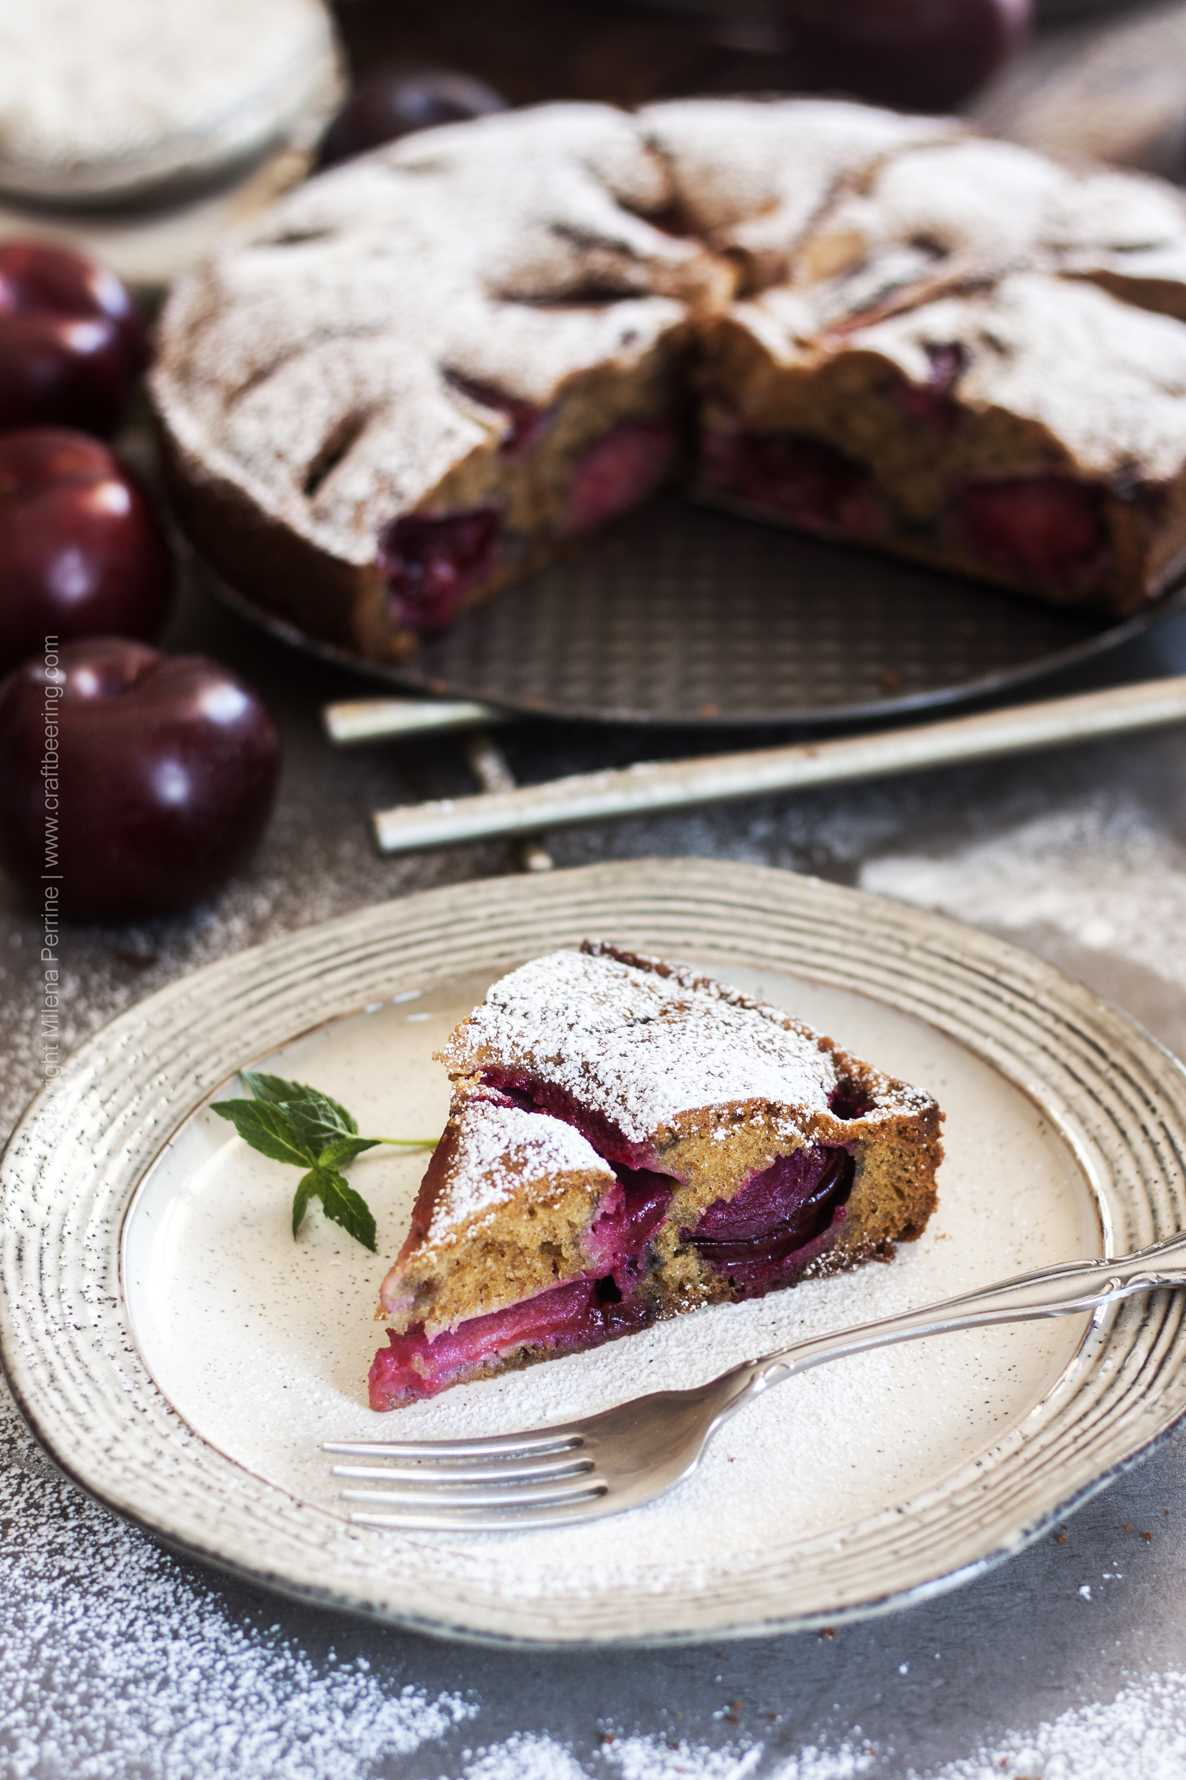 Austrian plum cake (or German Zwetschgenkuchen) a slice in front of the whole cake.